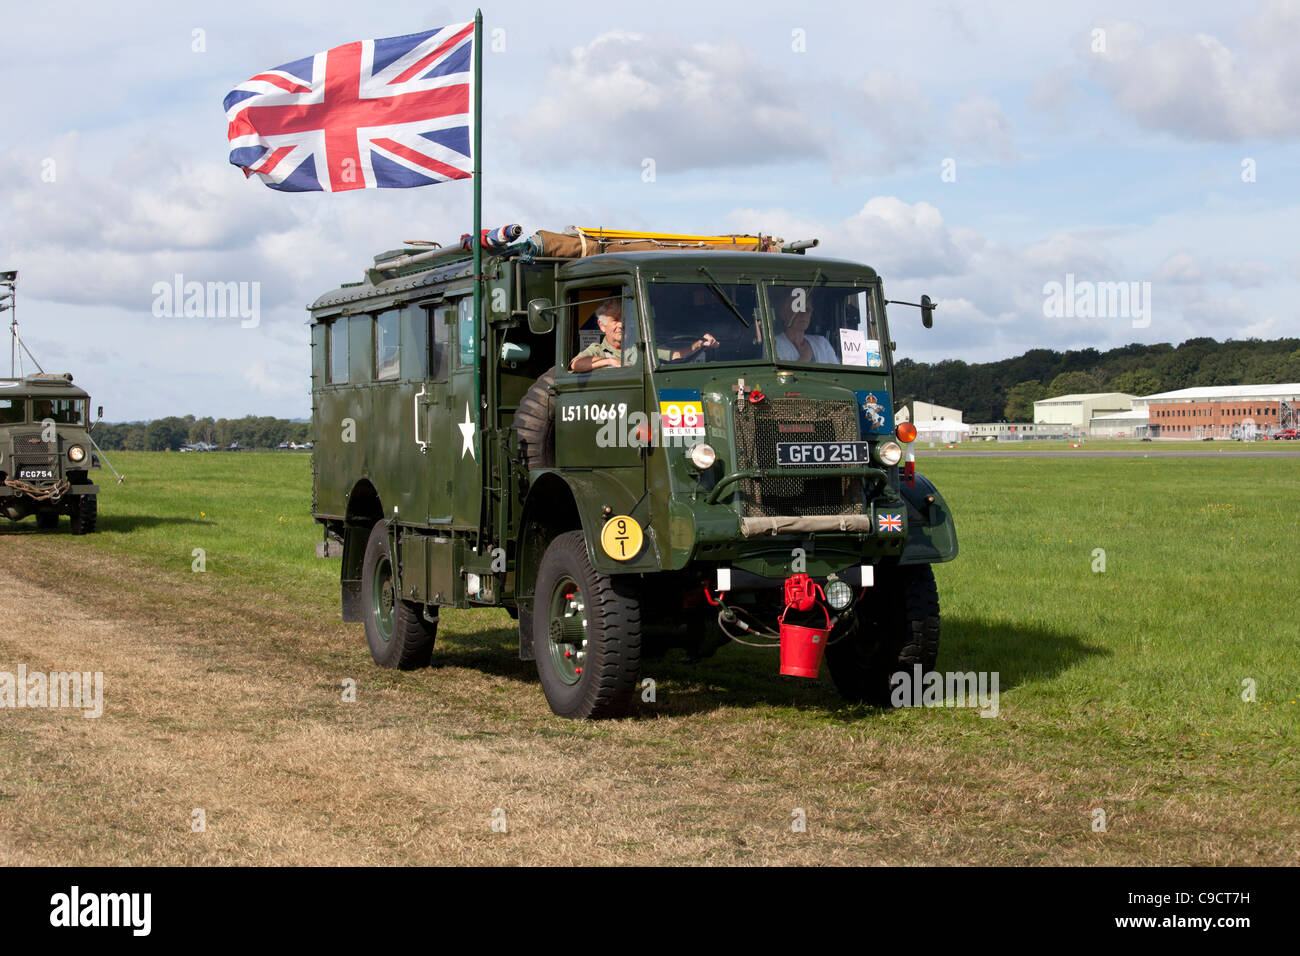 1943 Bedford QLR Military vehicle parade - Stock Image